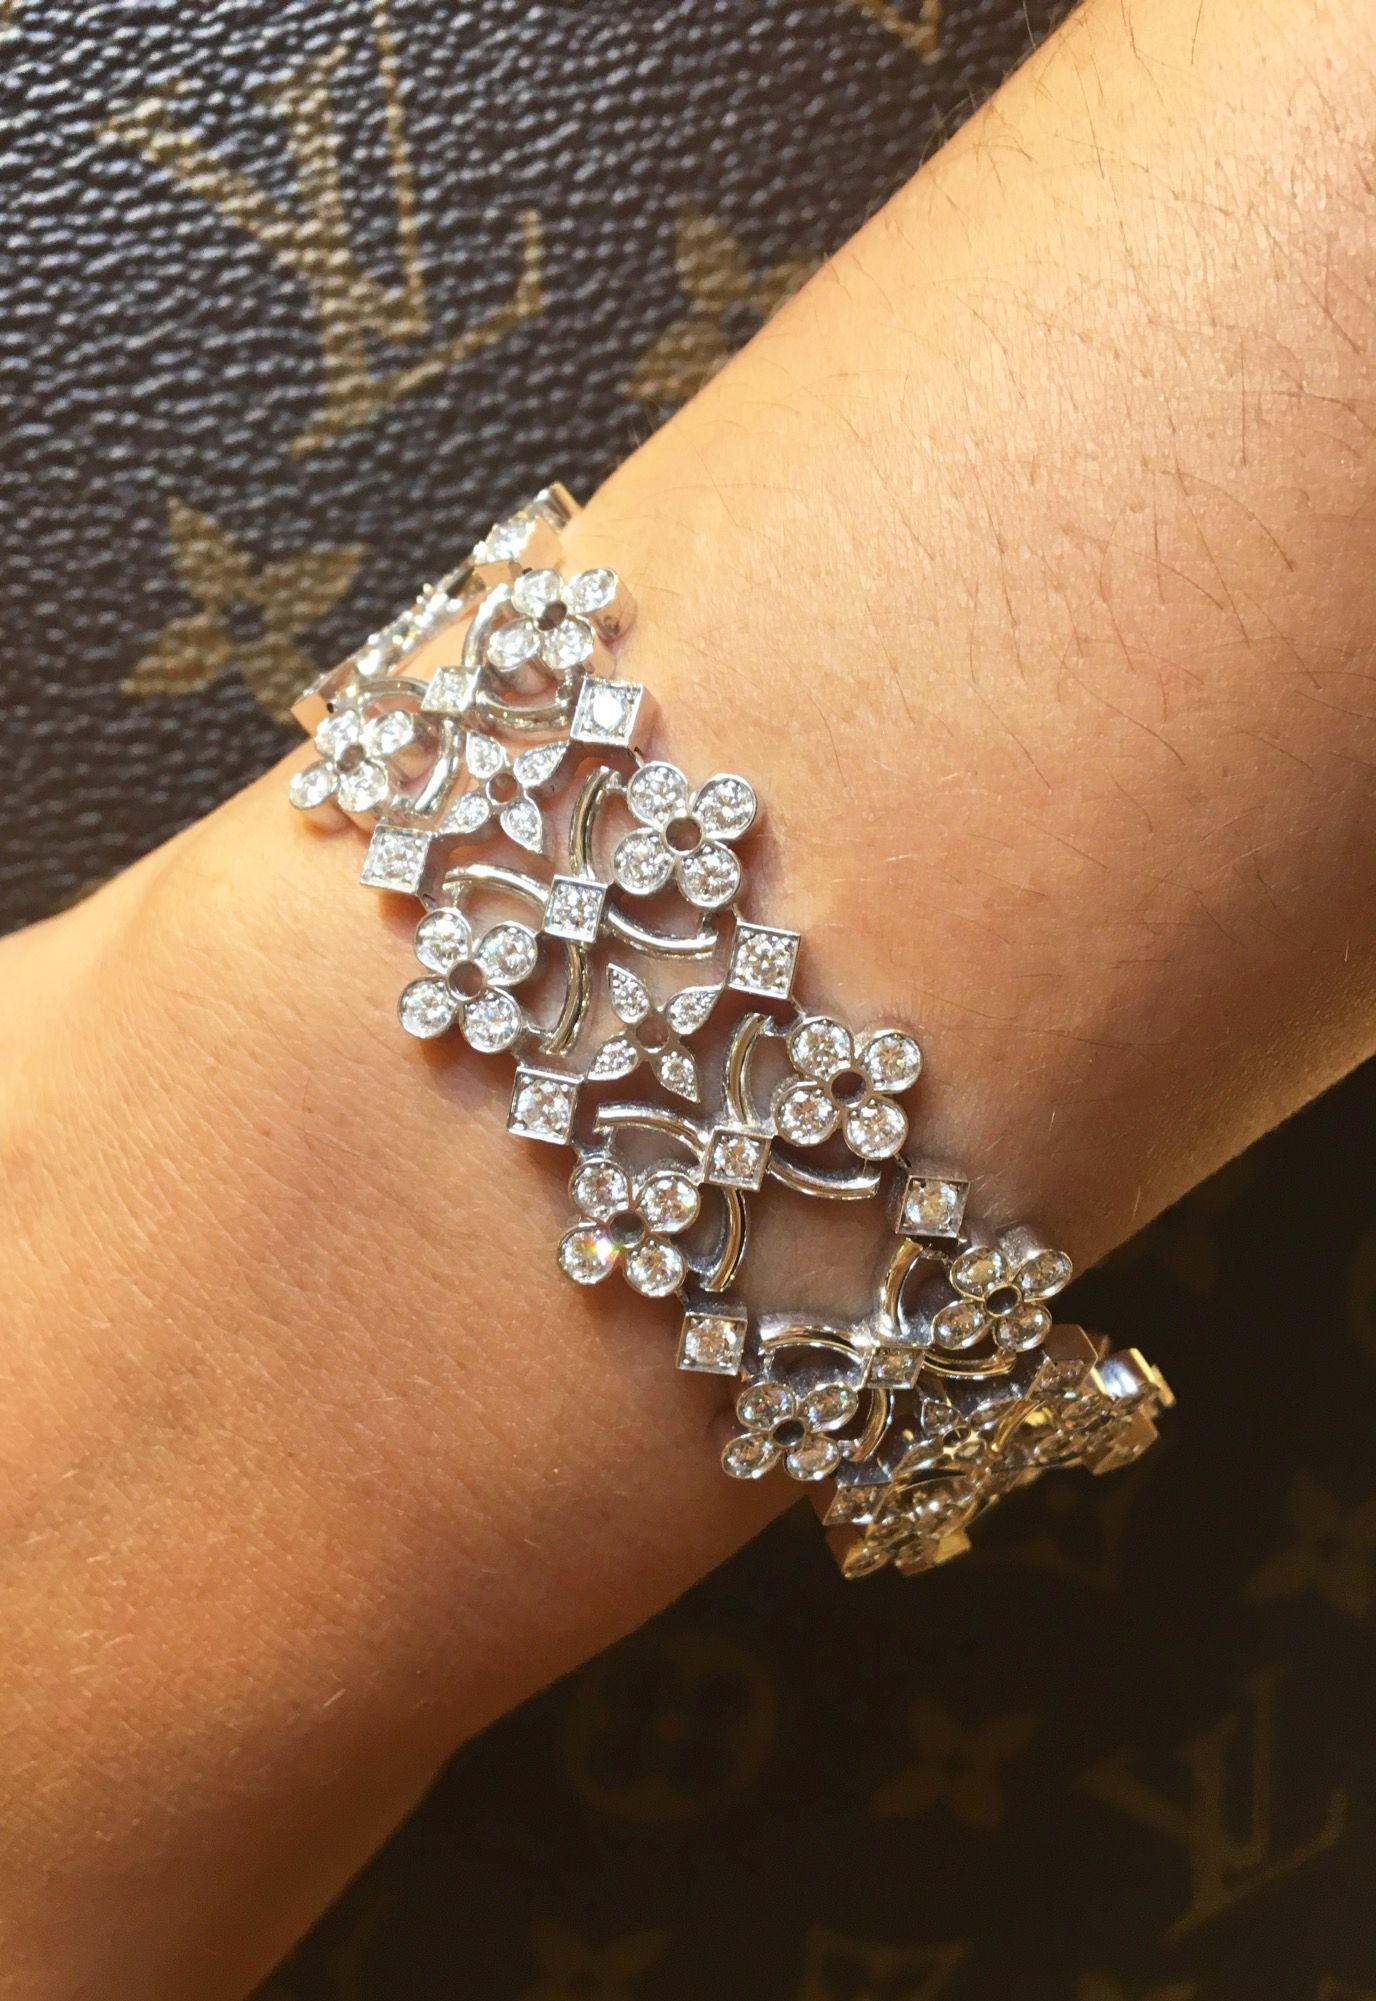 Louis vuitton dentelle de monogram bracelet with diamonds set in